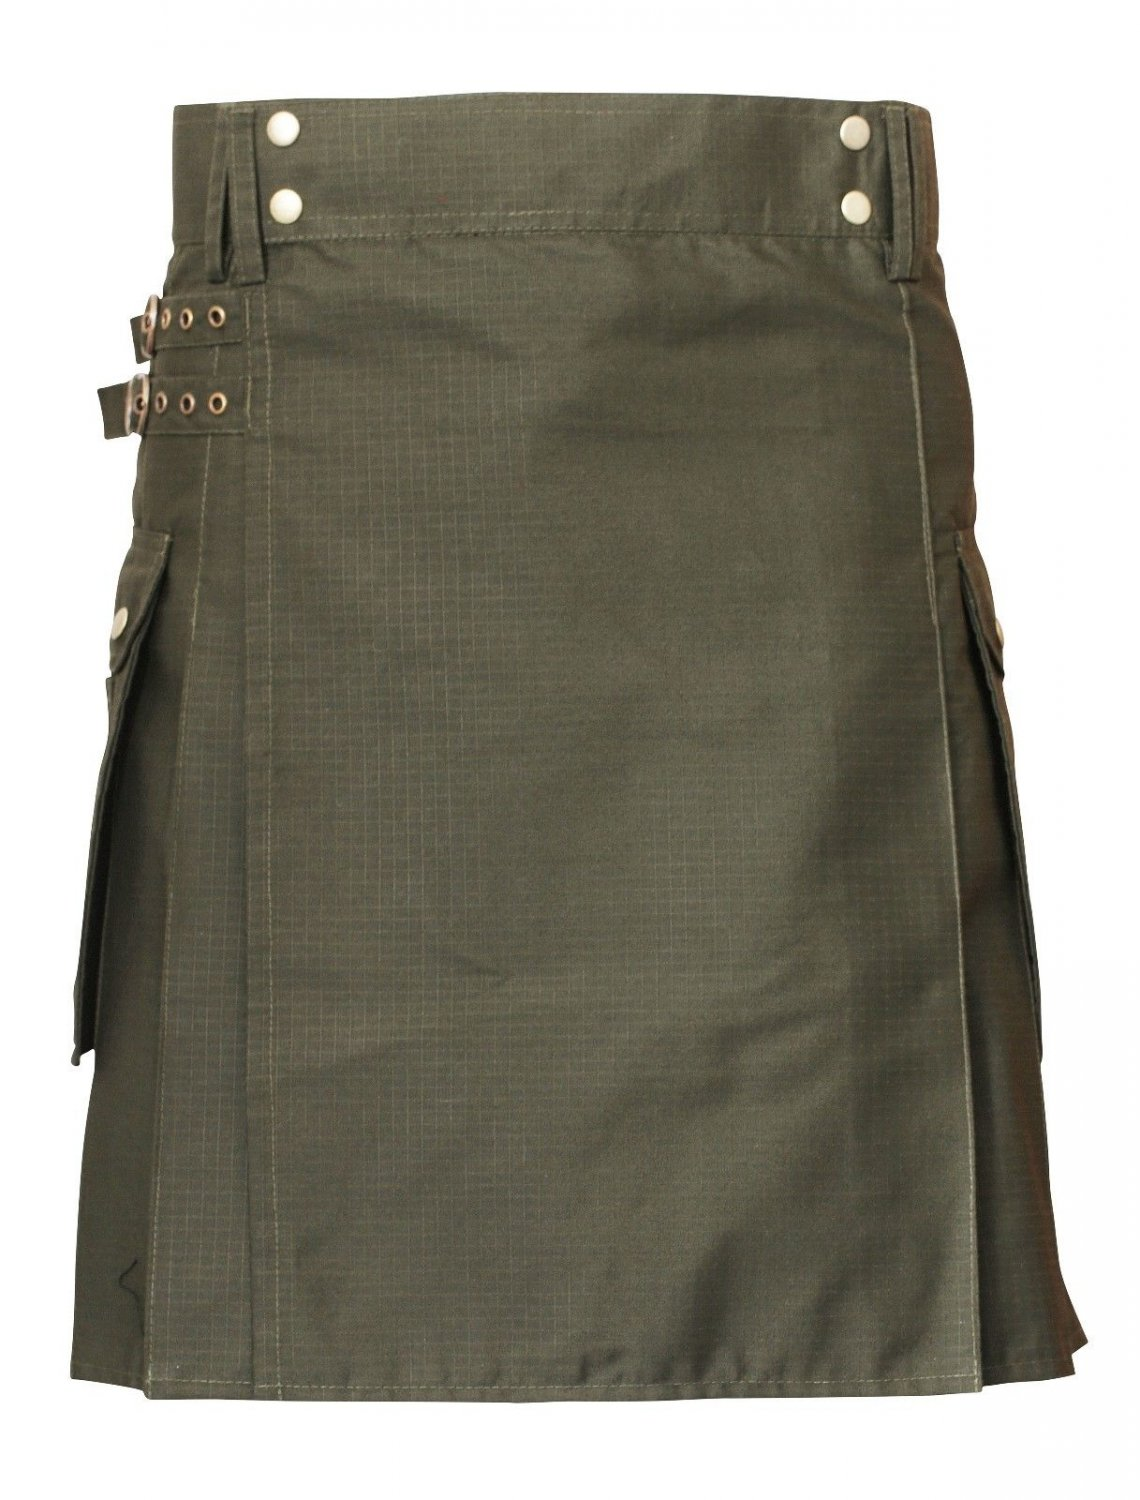 60 Size Traditional Scottish Utility Heavy Rip Stop Cotton Kilt Olive Green Cotton Deluxe Kilt